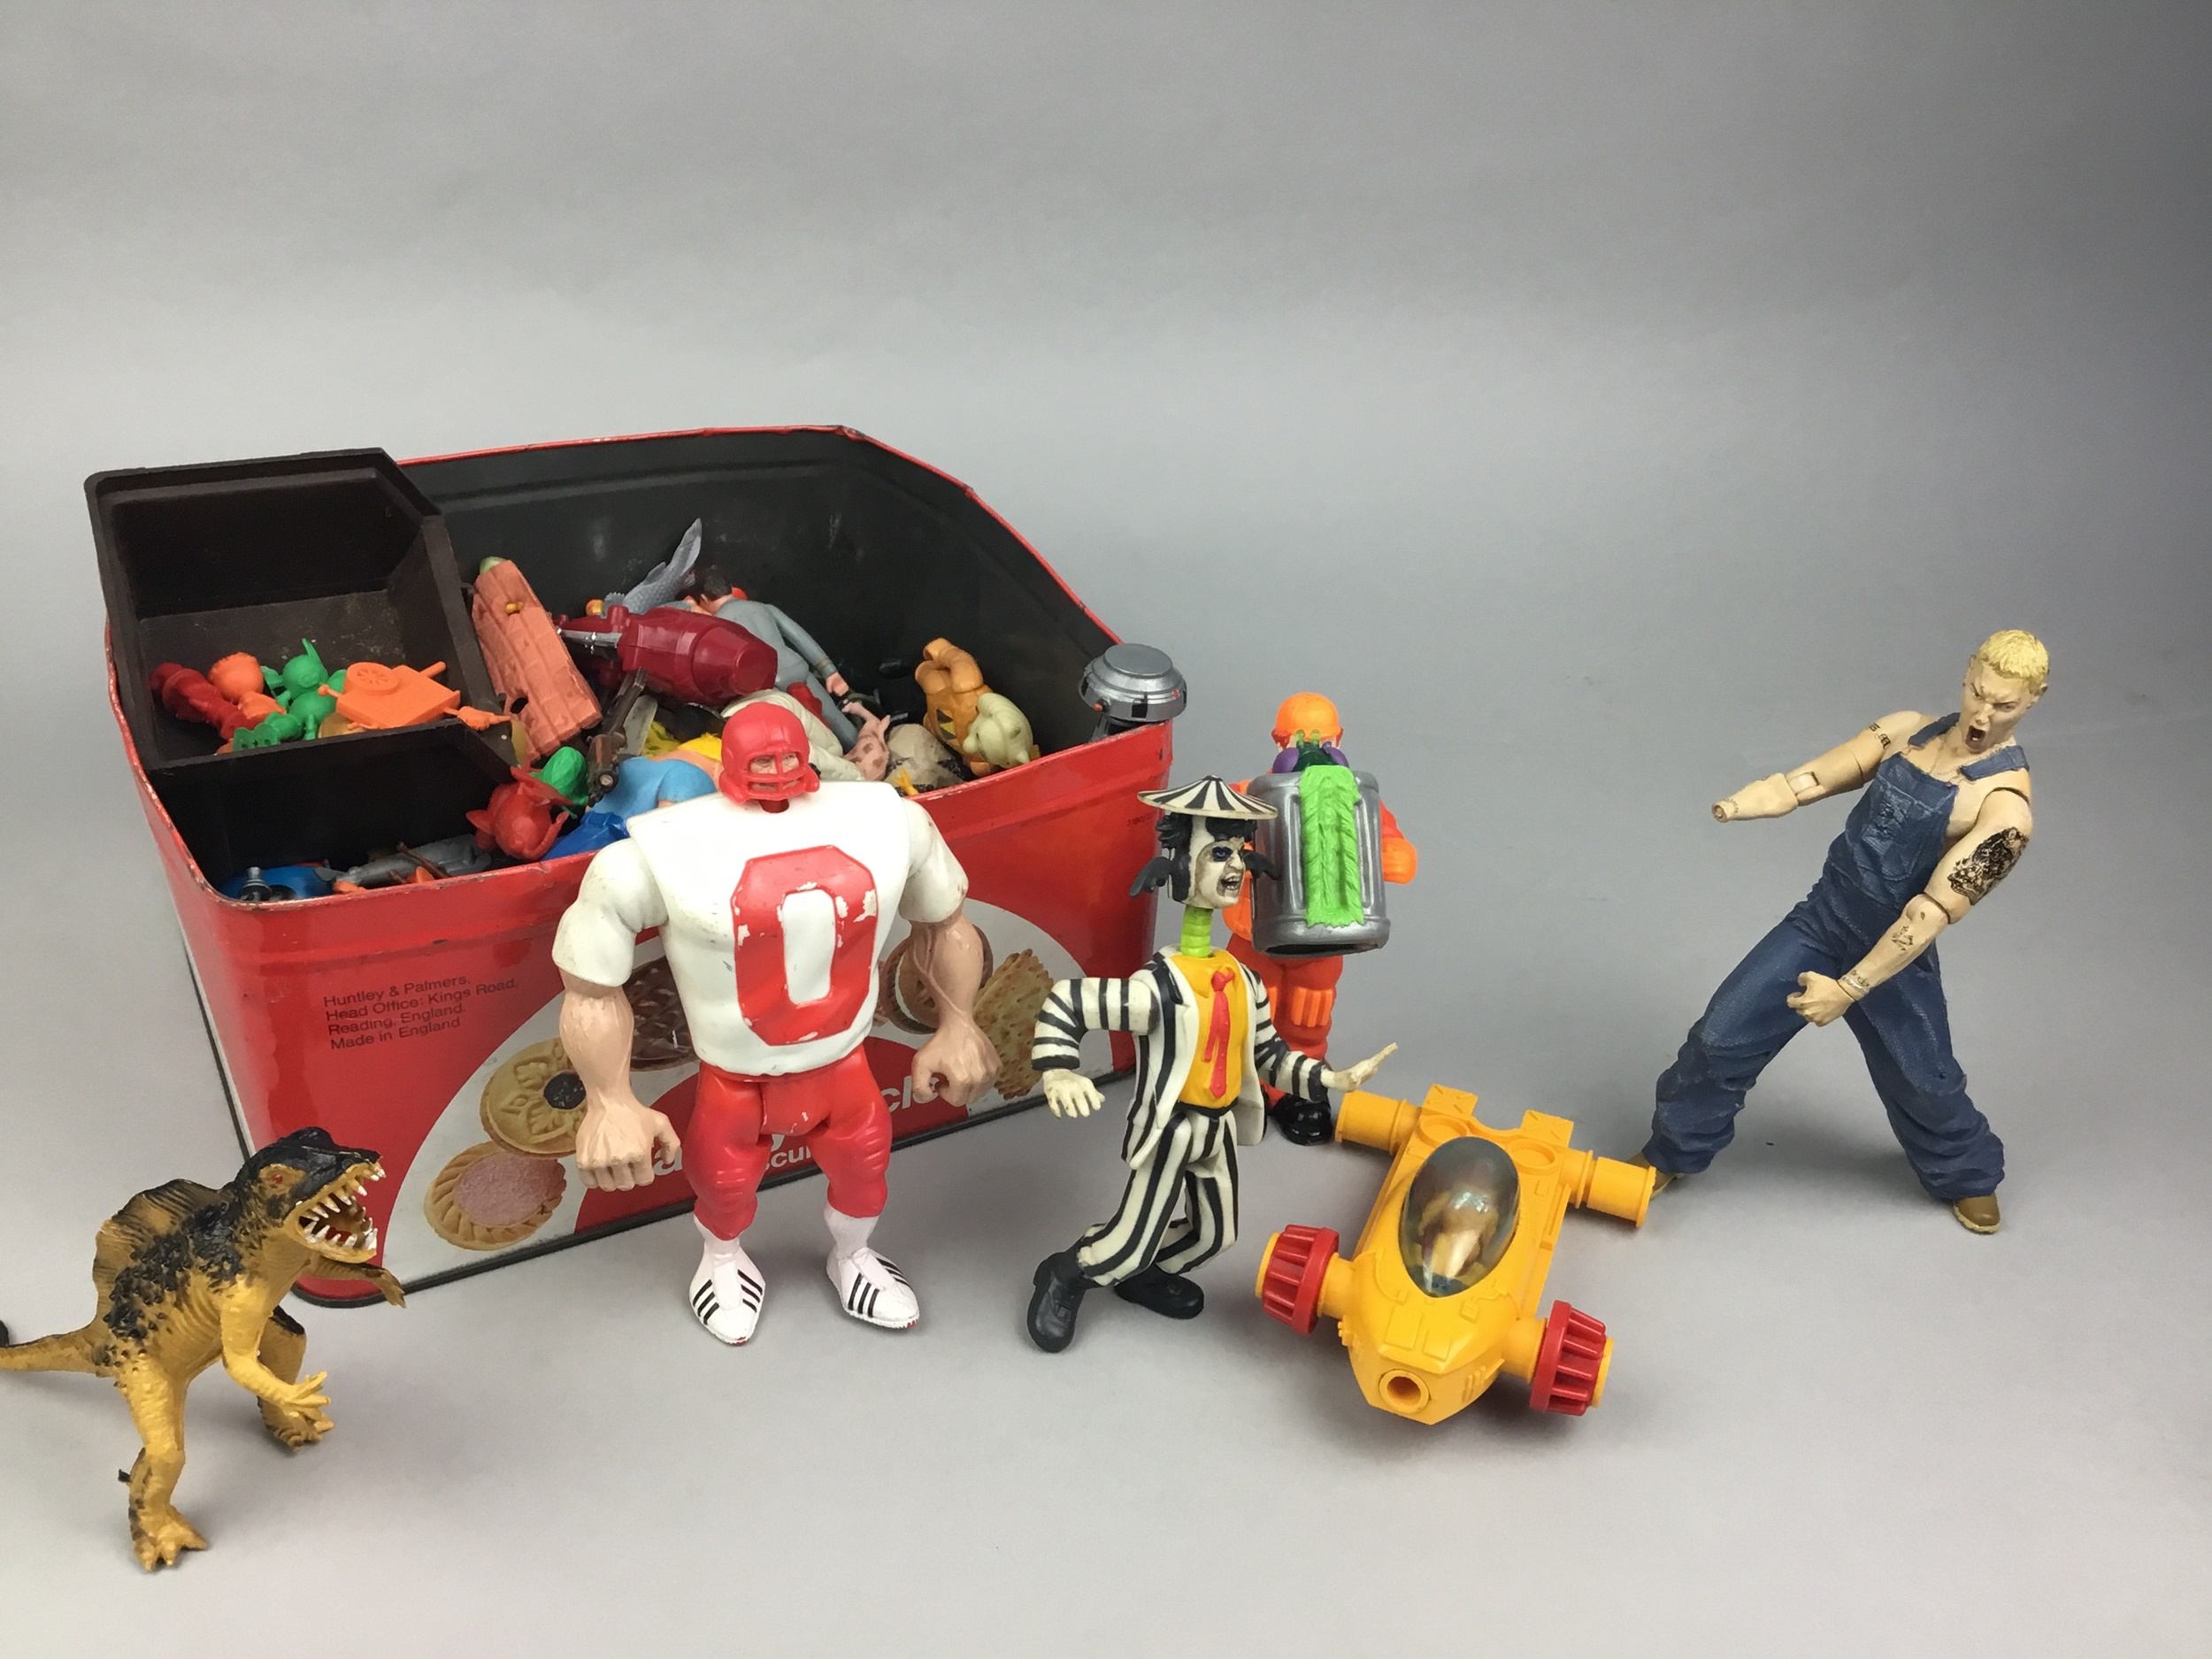 A LOT OF RUBBER AND PLASTIC CHARACTER TOYS